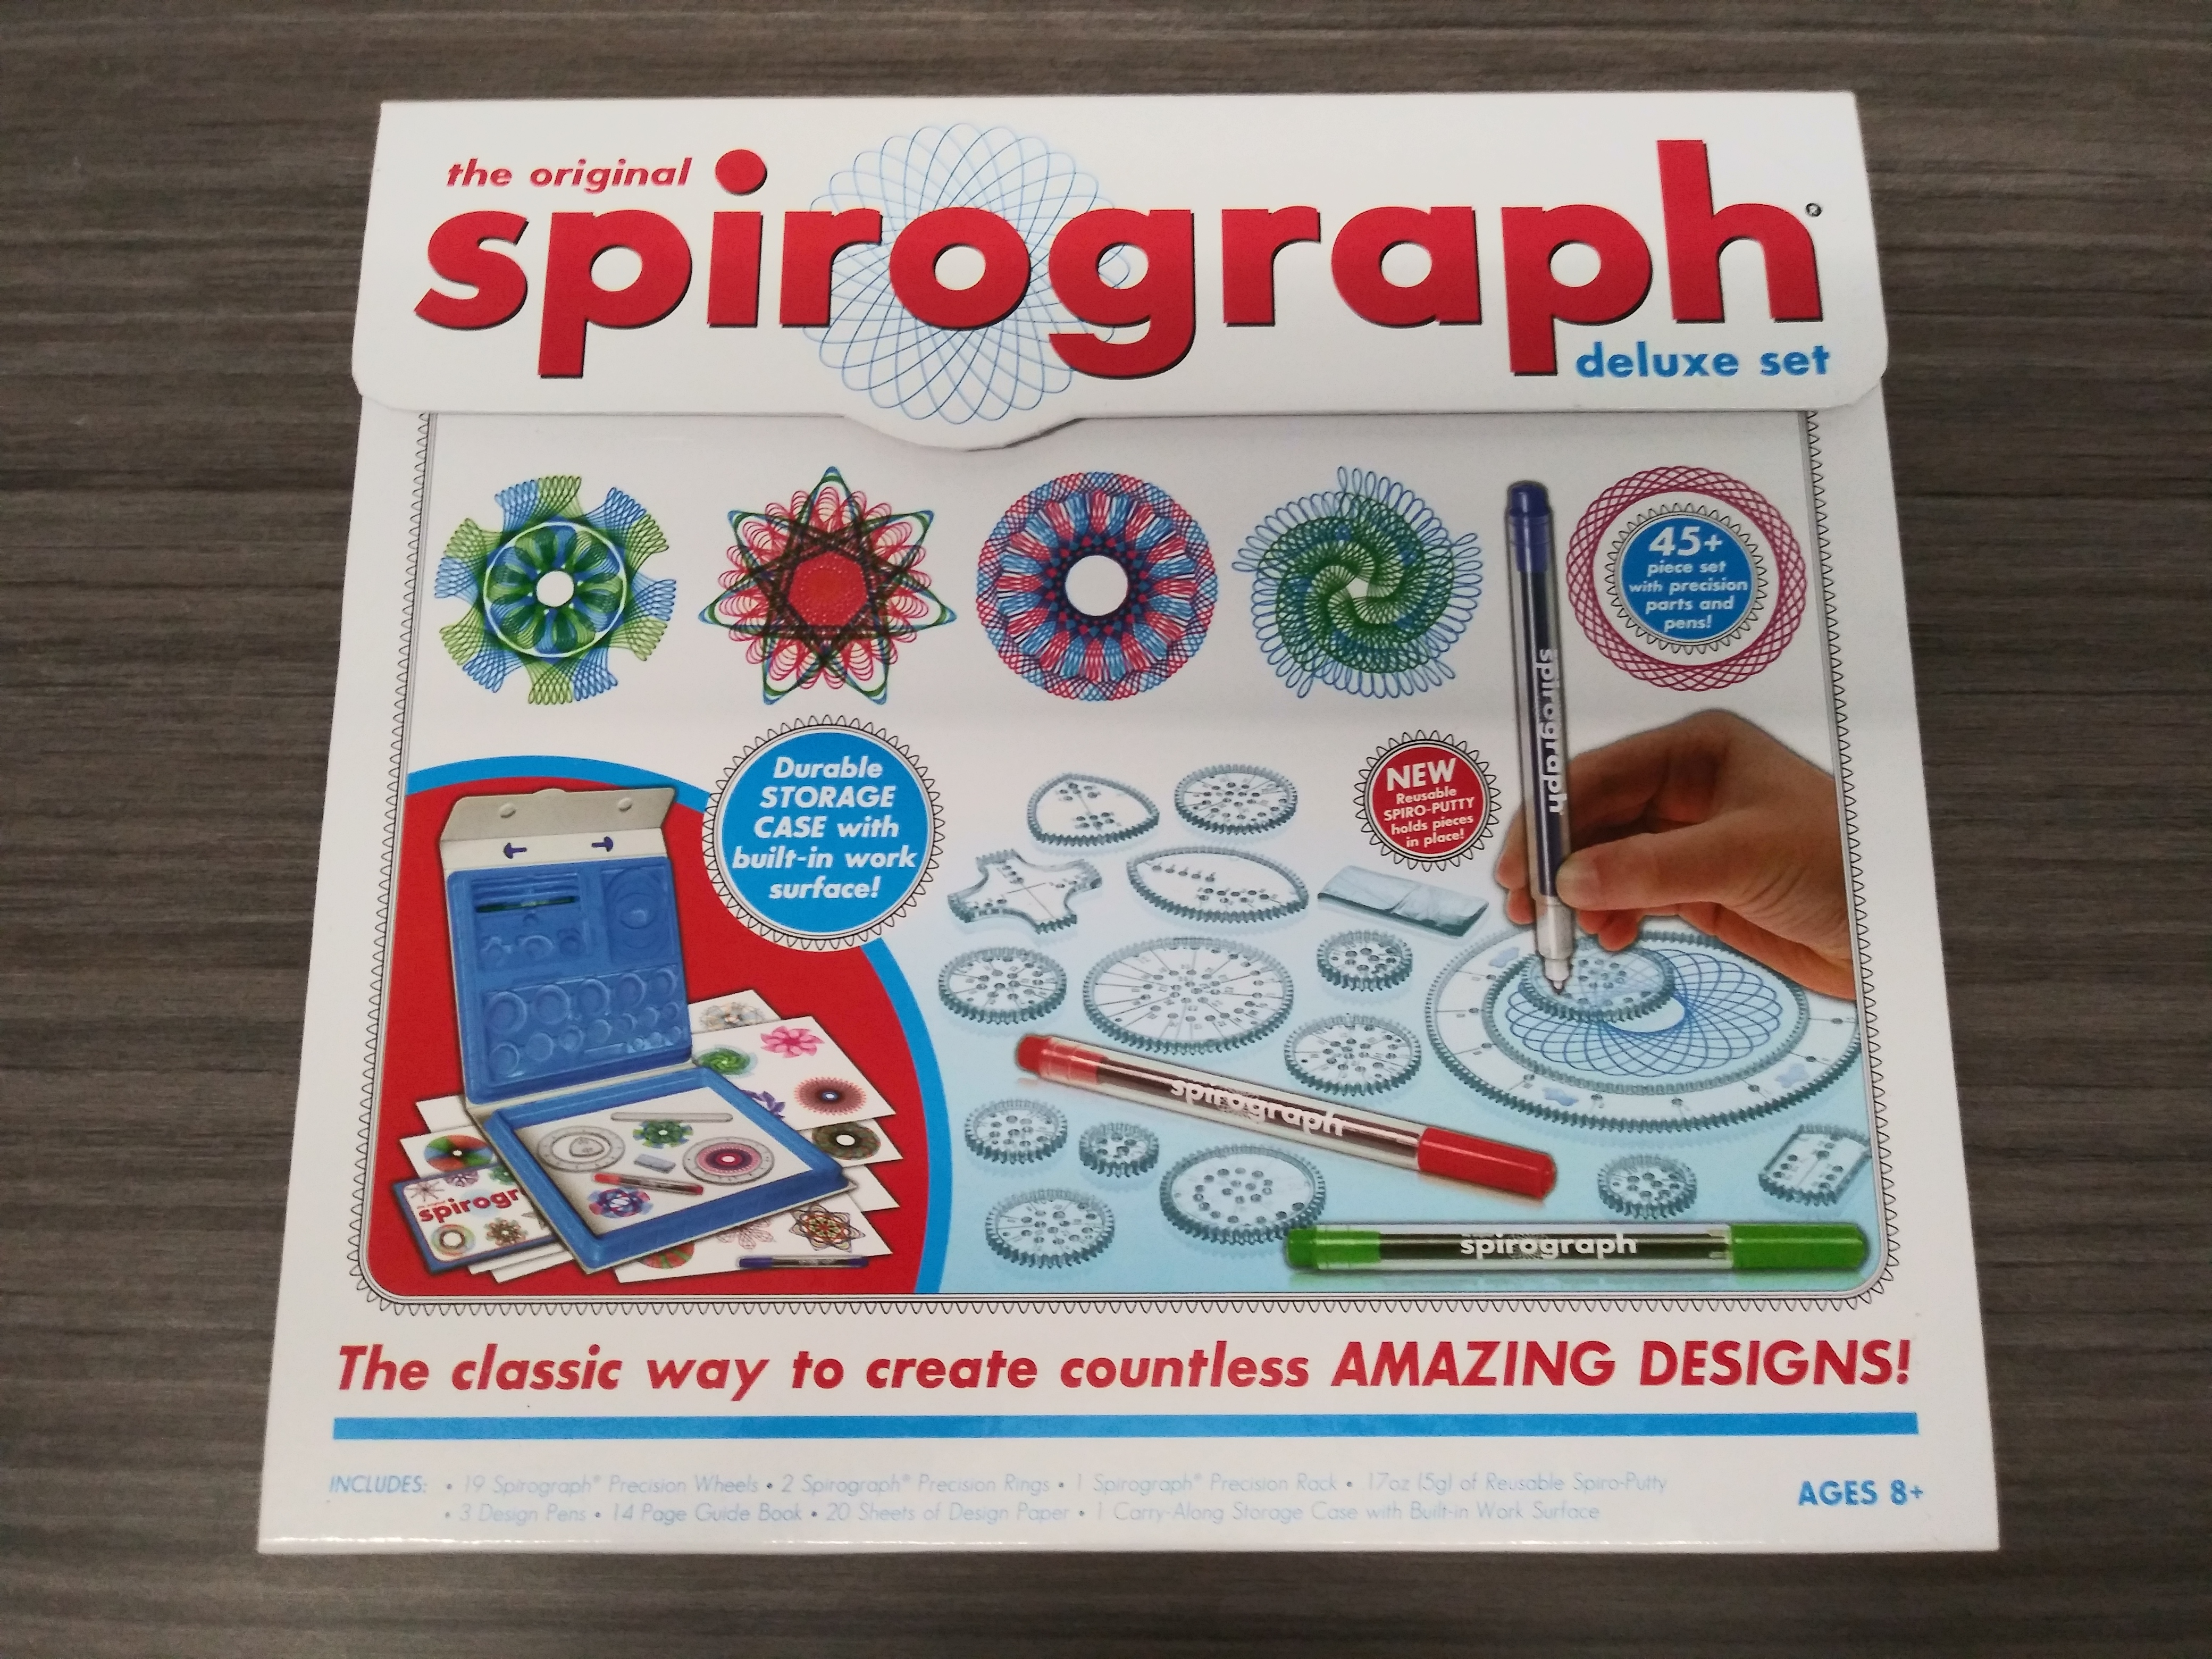 The original spirograph delux set - The classic way to create countless amazing designs!